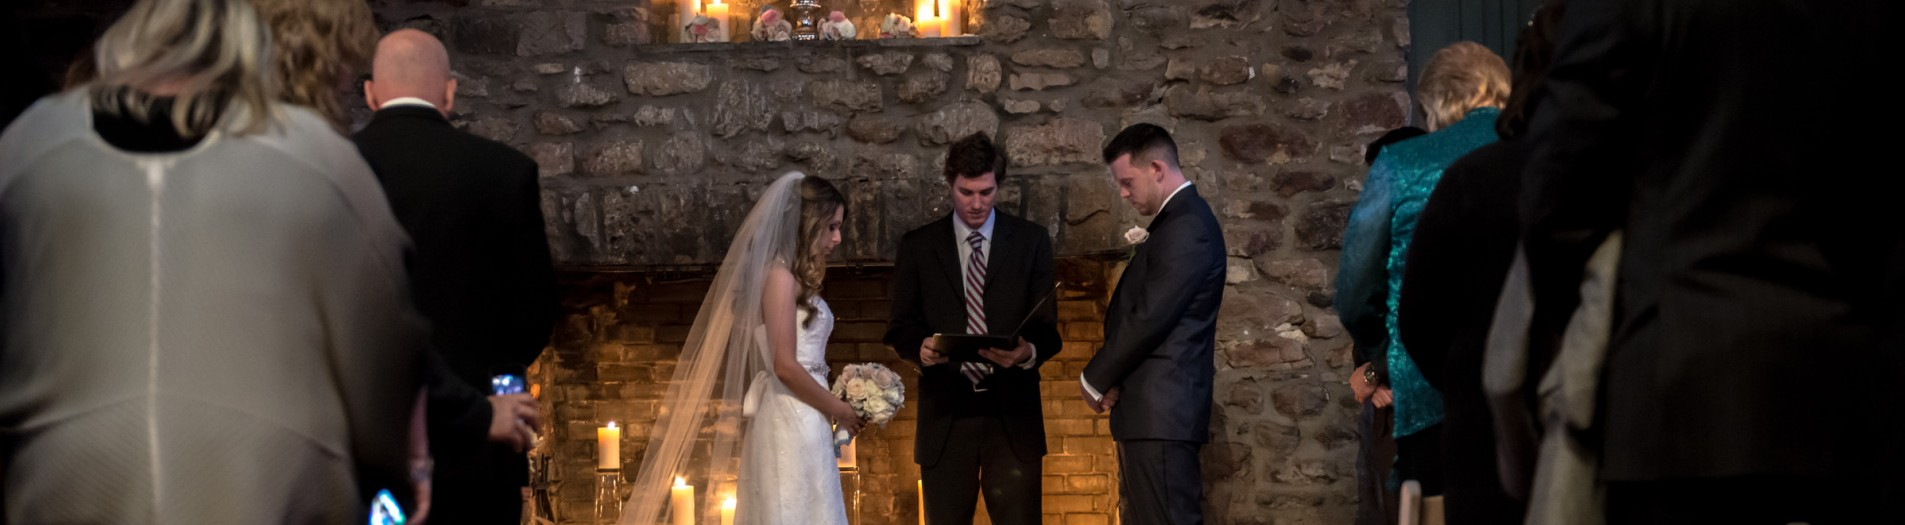 Inexpensive Wedding Photographers in New Hope Pa.